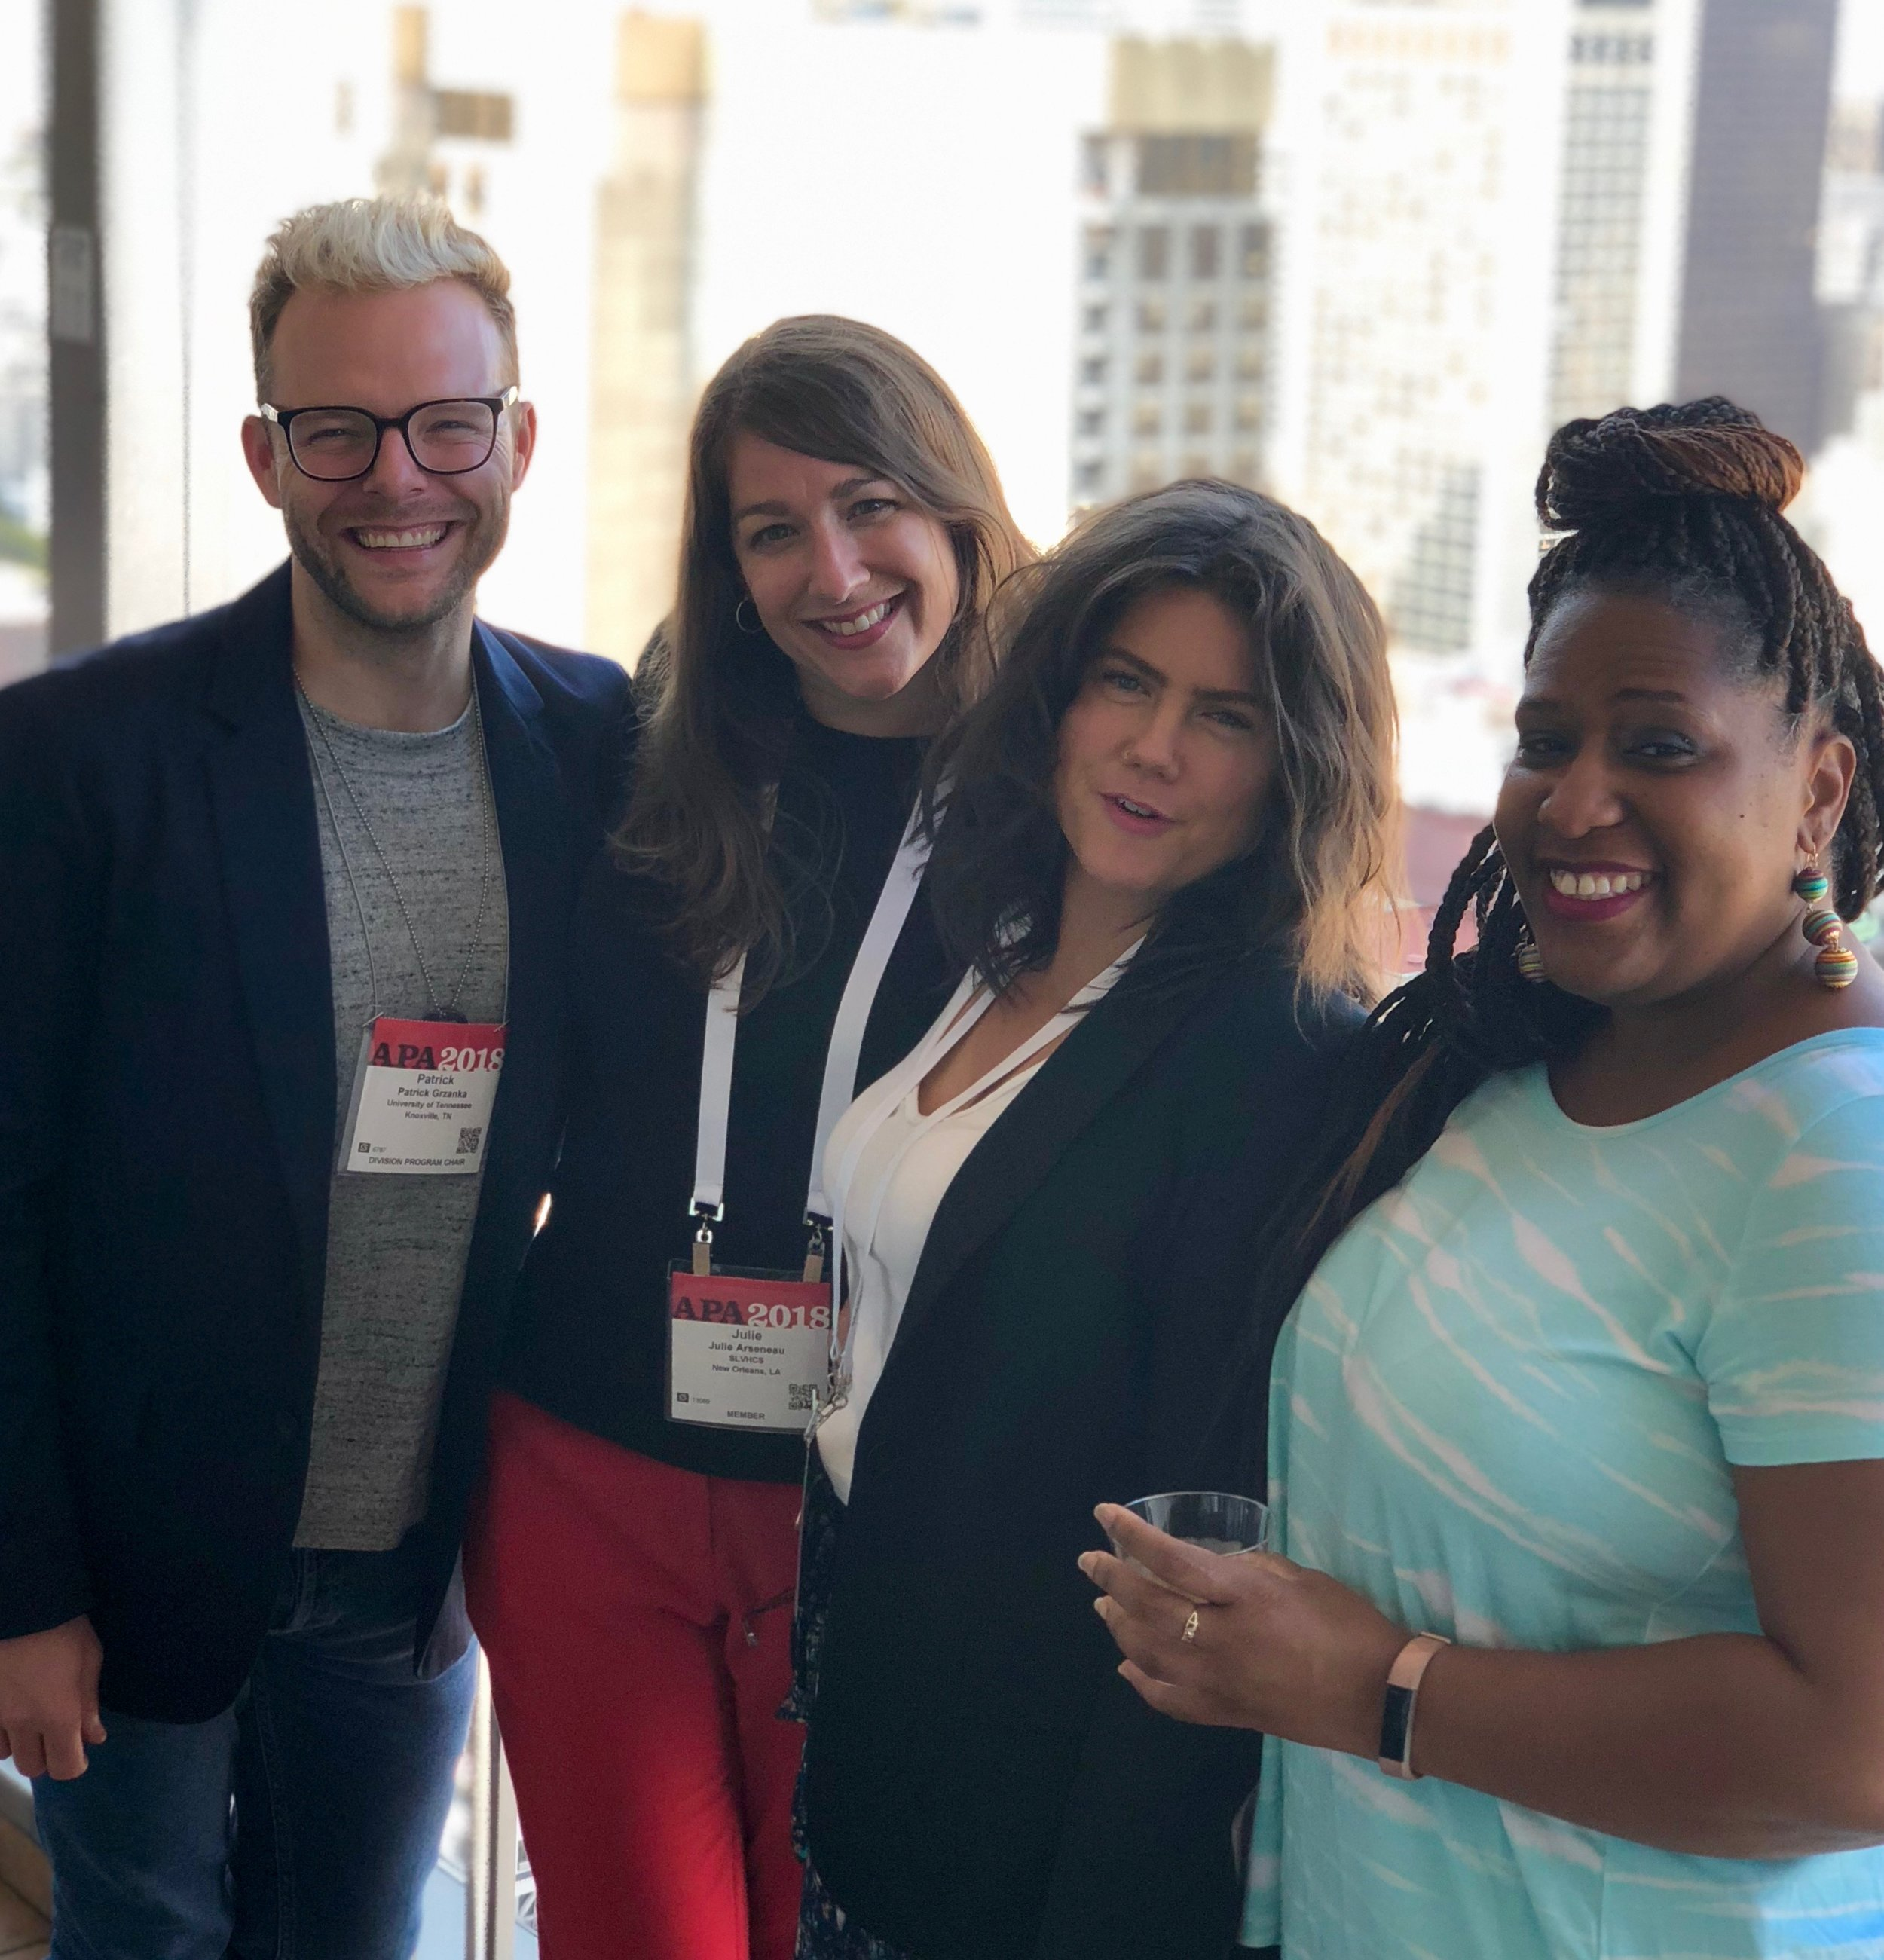 Grzanka with colleagues at the American Psychological Association 2018 annual convention in San Francisco.